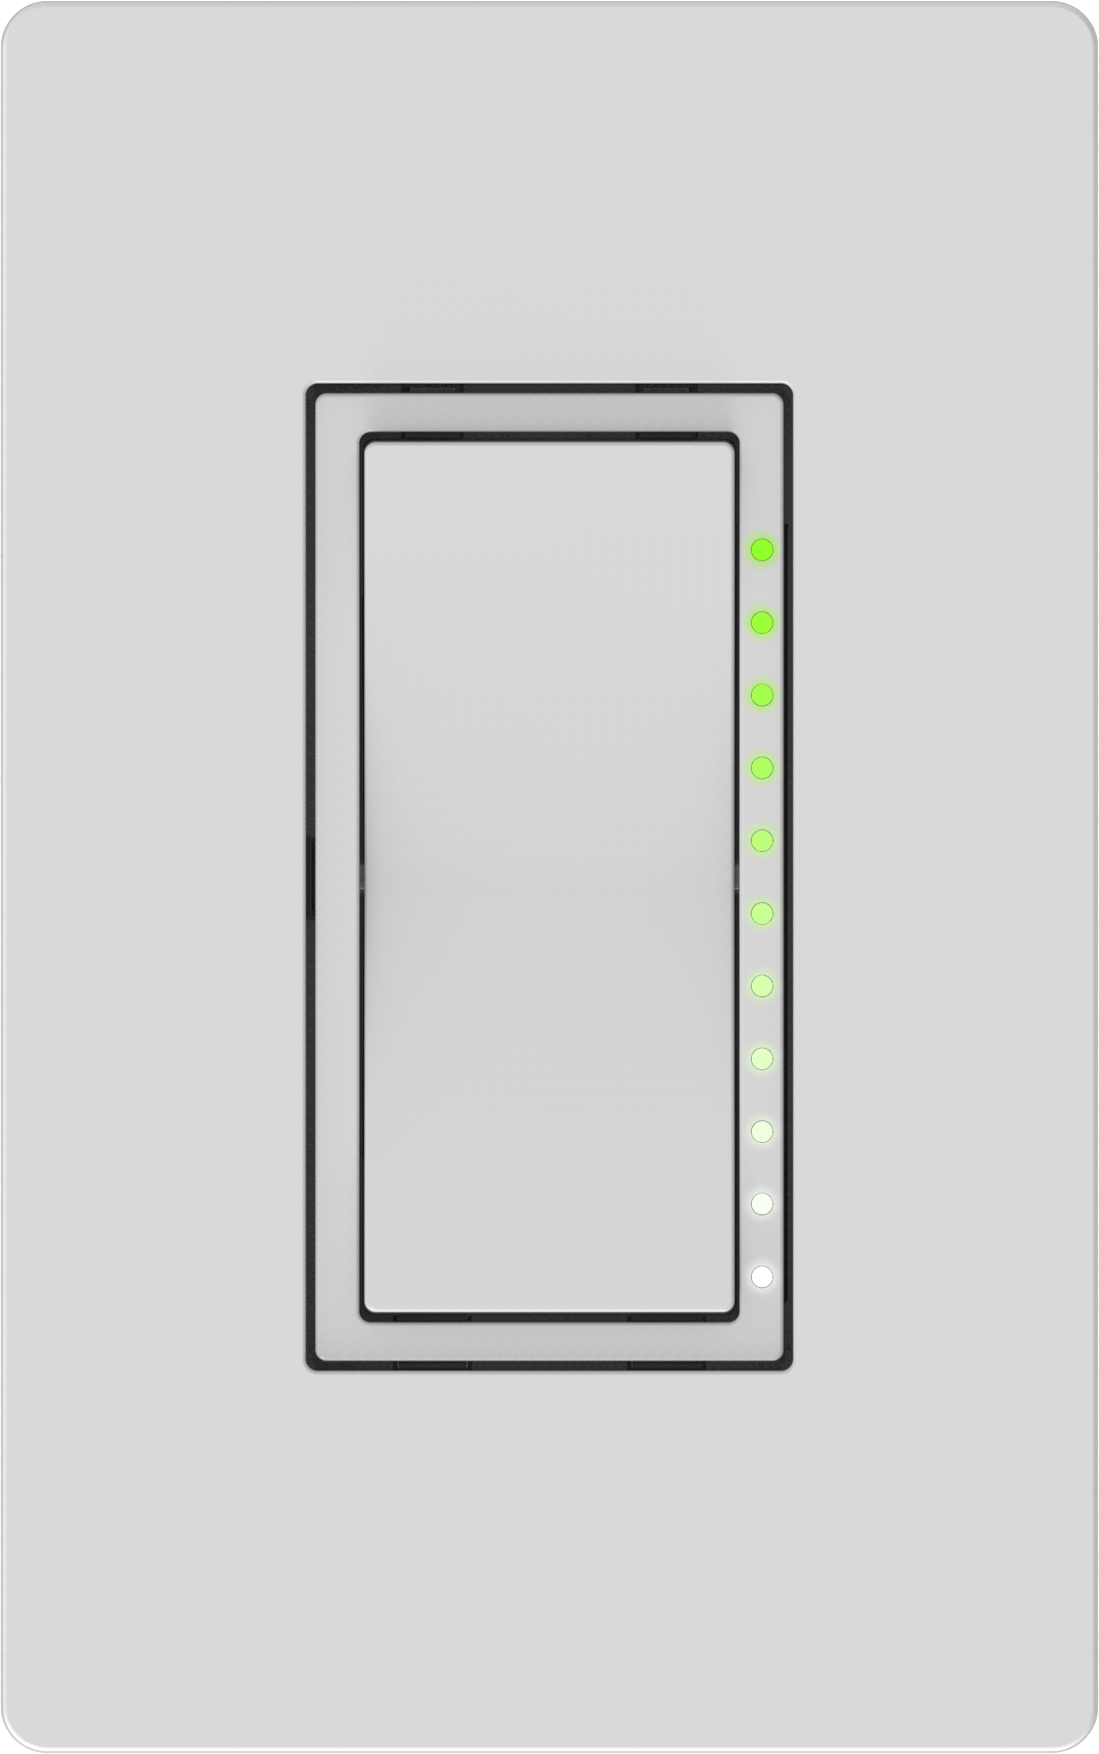 Wireless Networked Lighting Control Dimmer